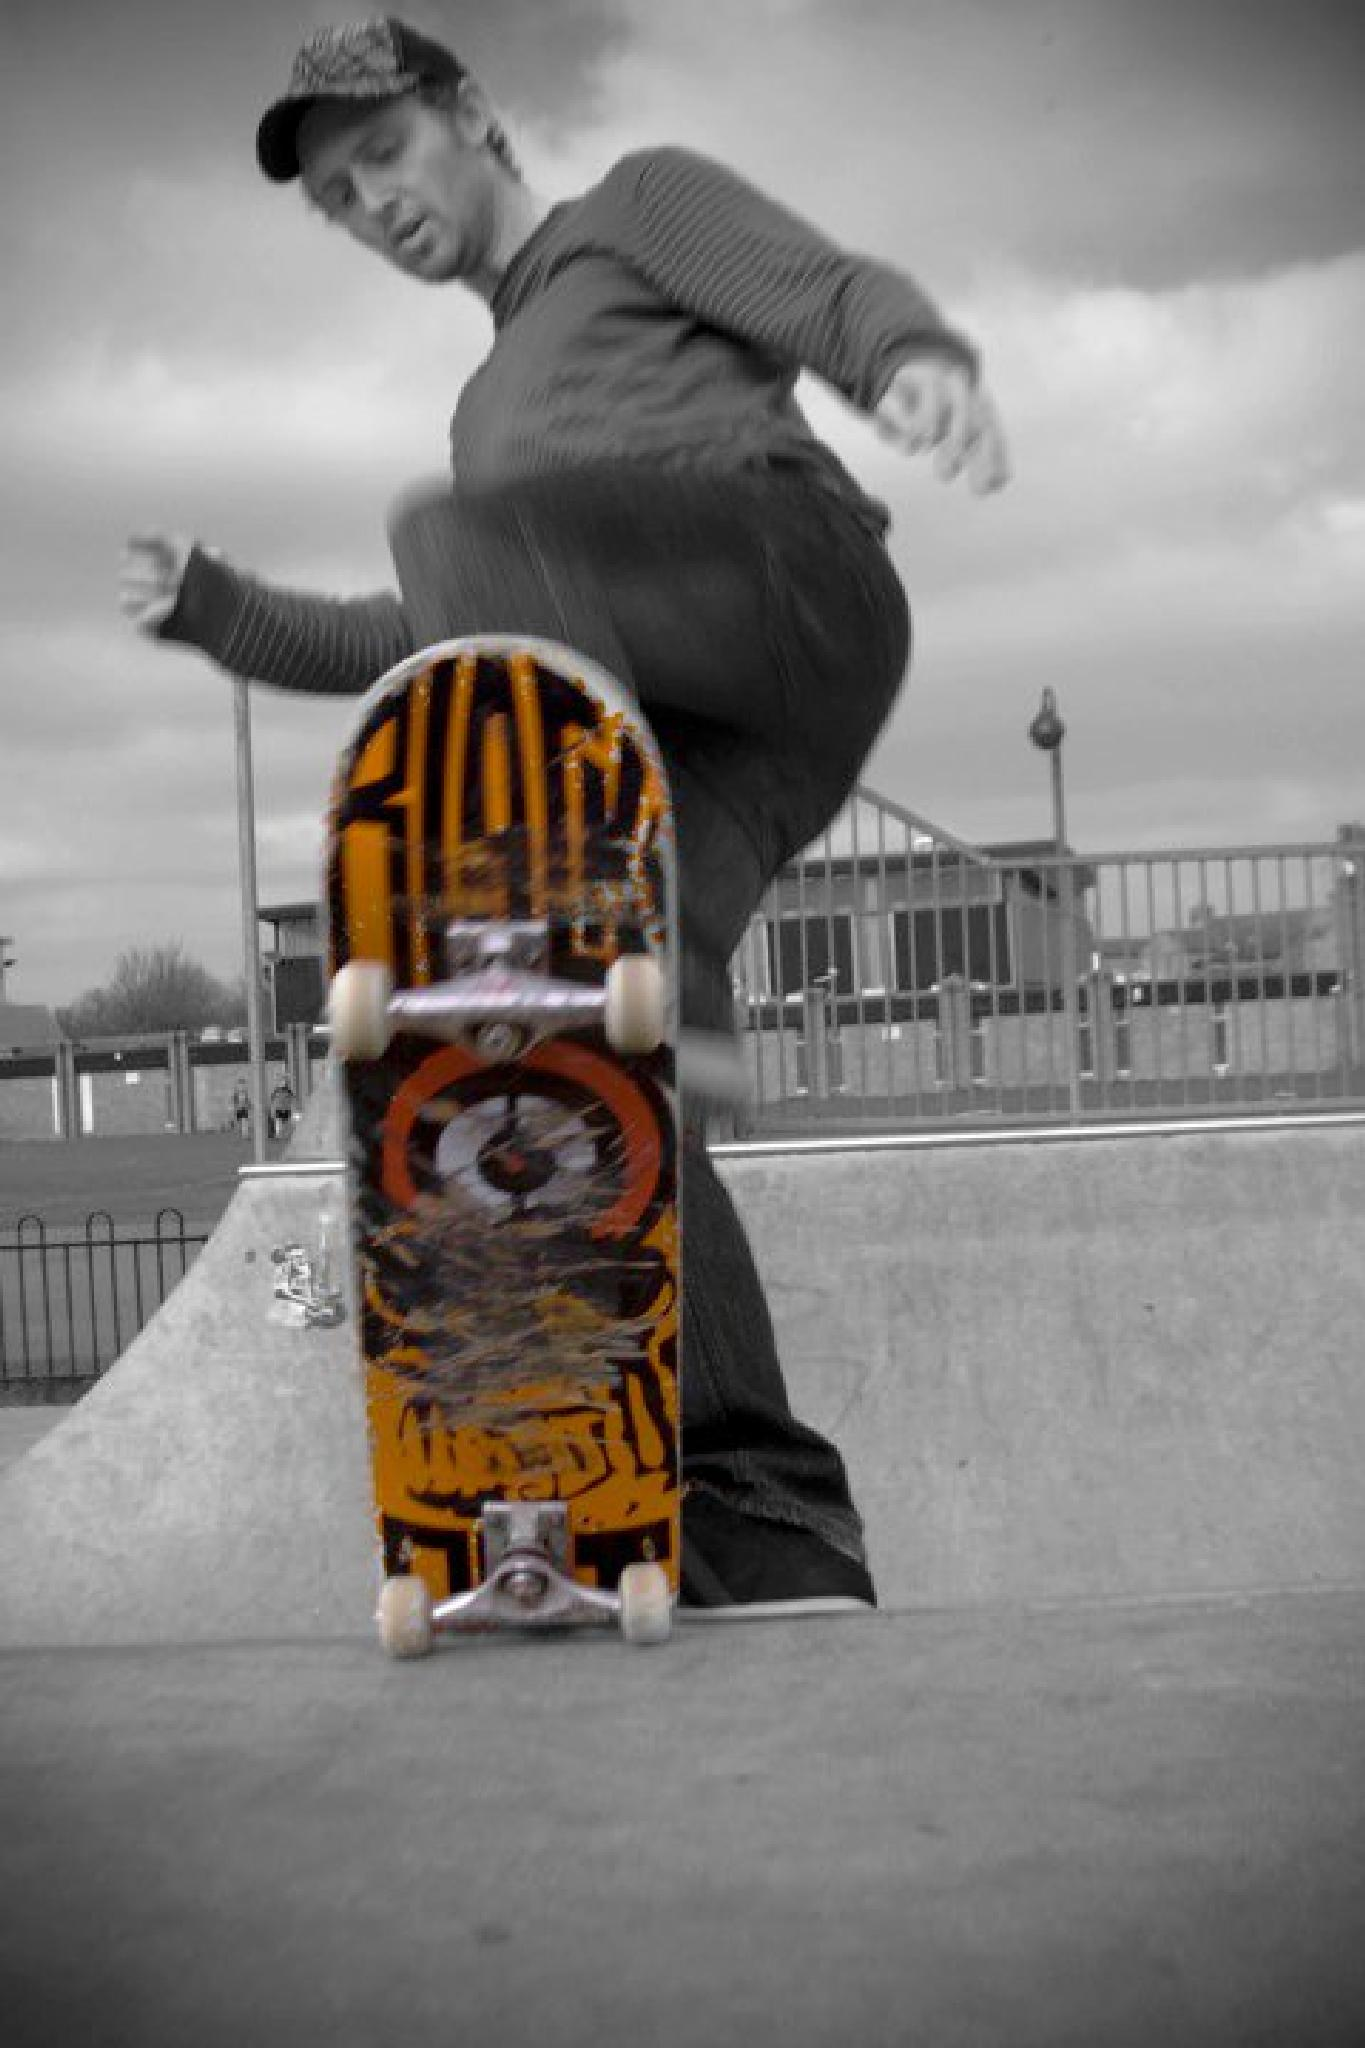 Skate park, board colour pop by shorey